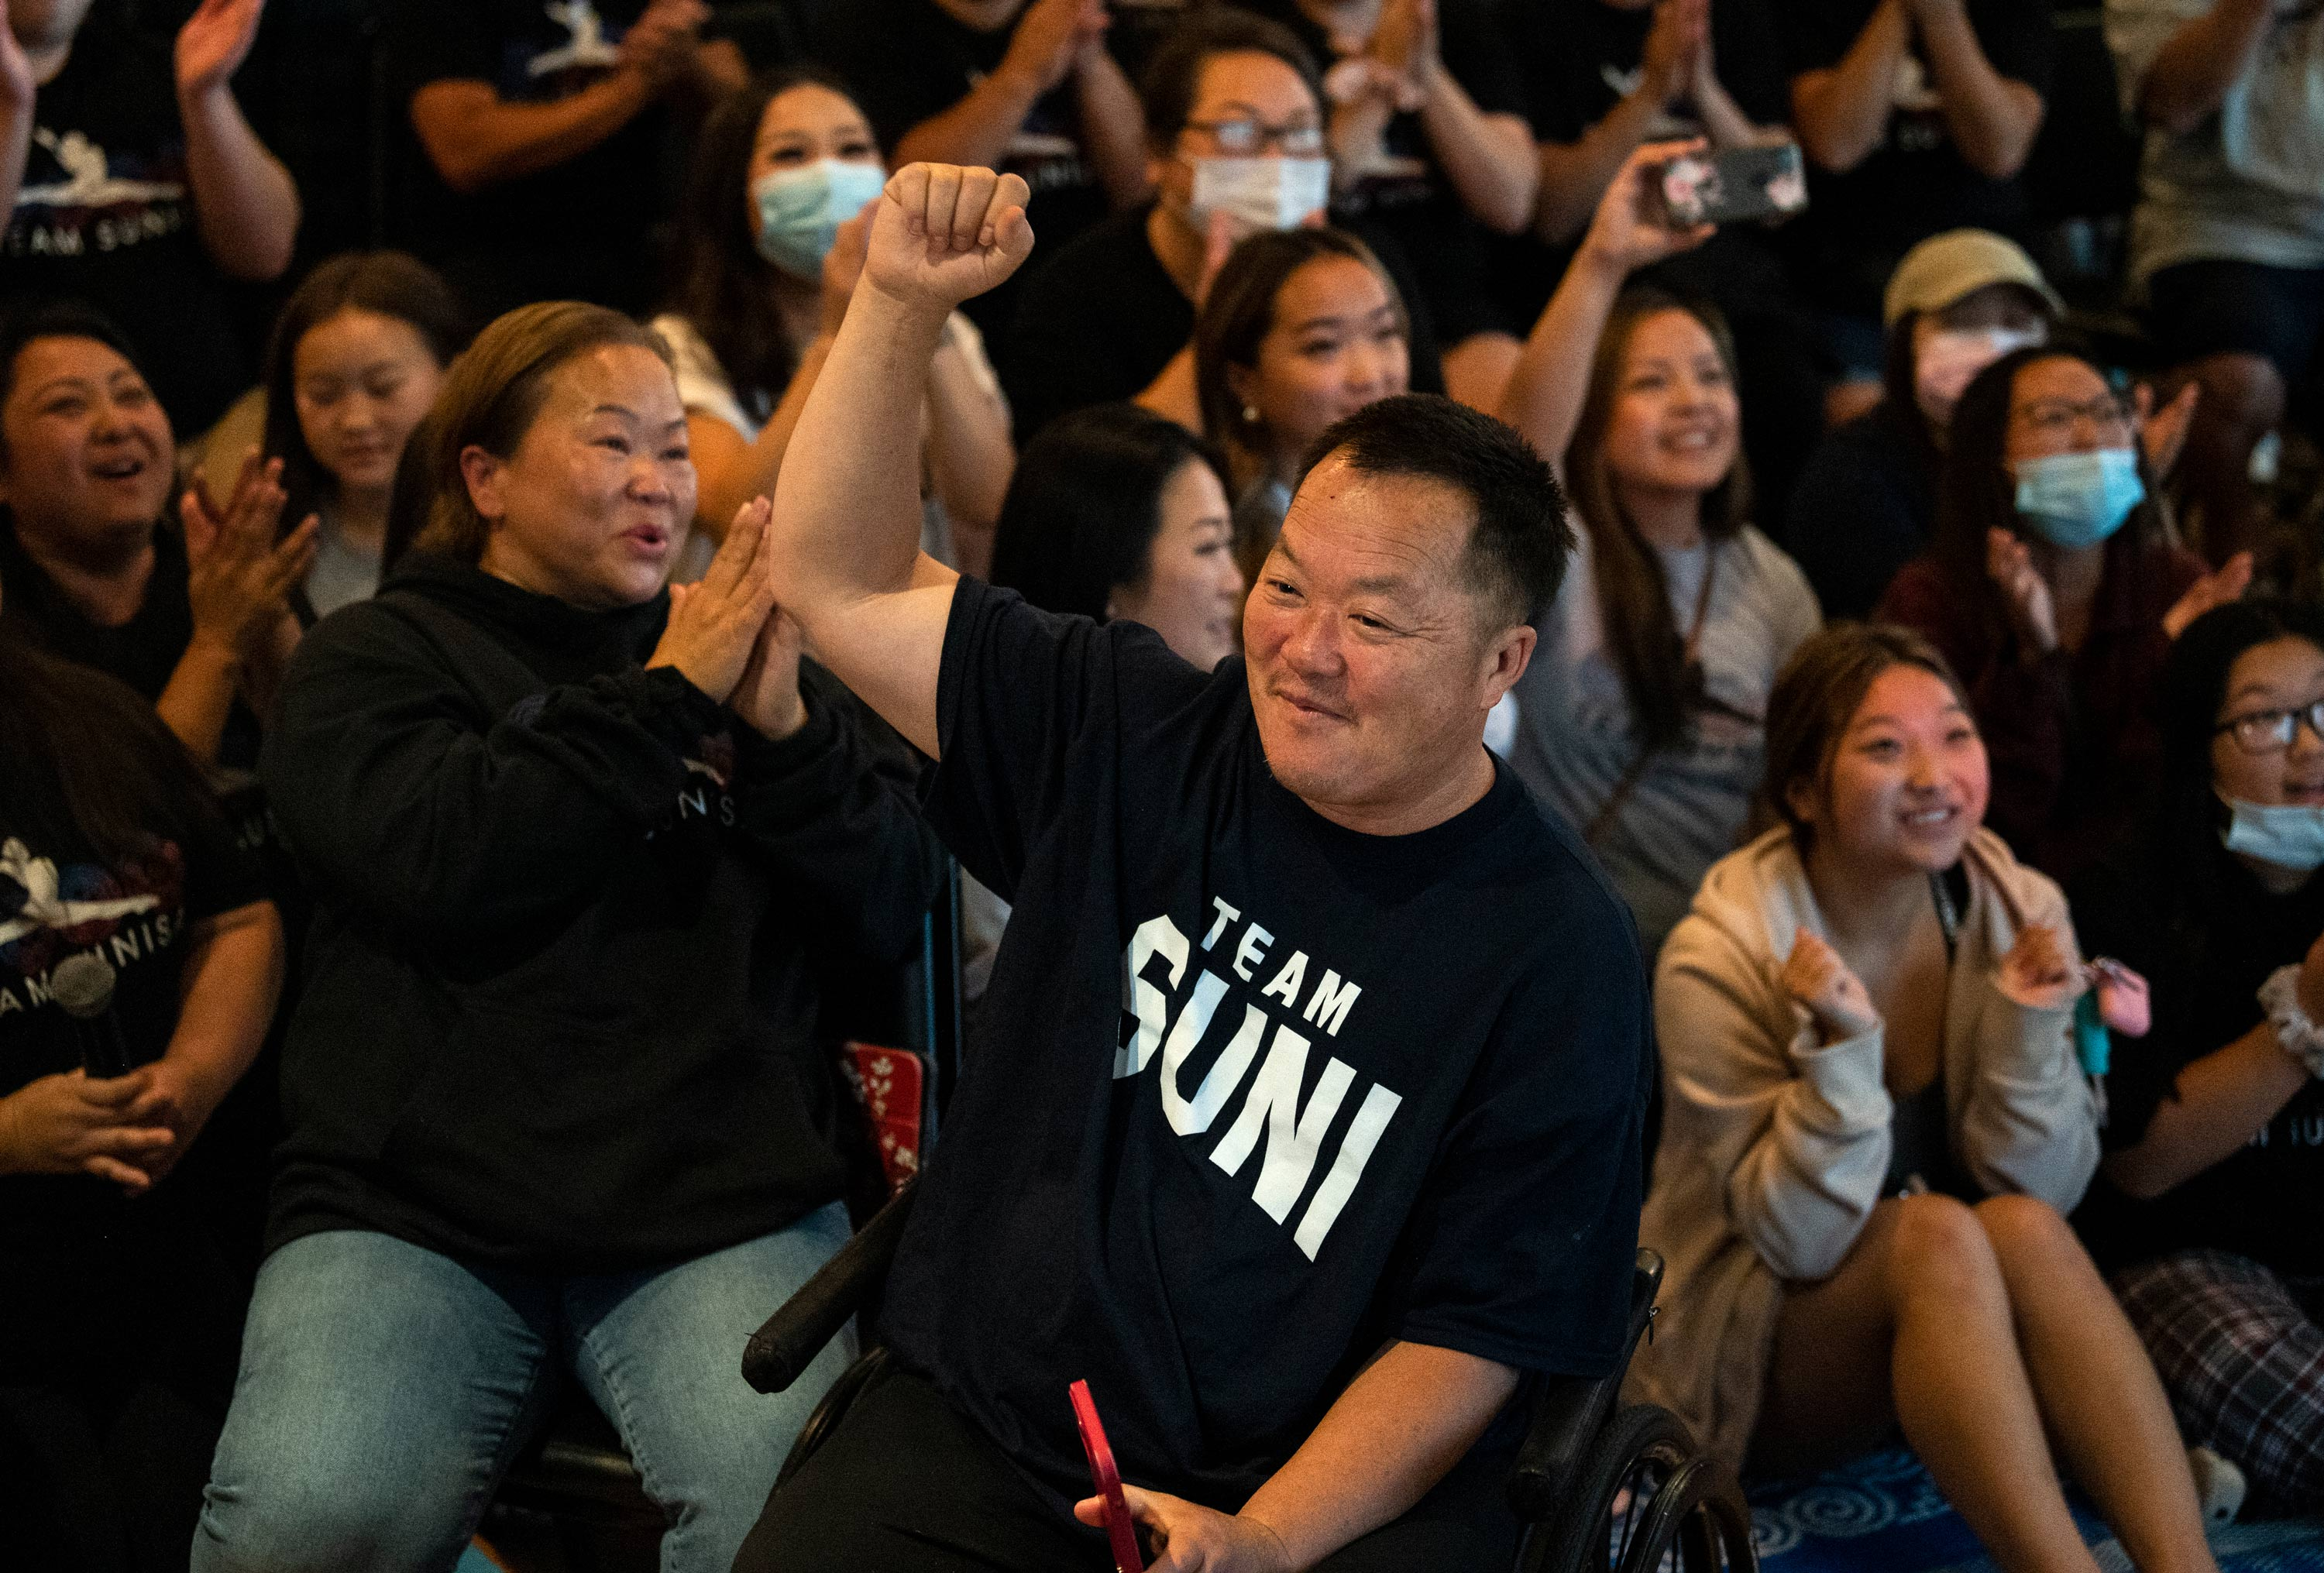 John Lee, father of Sunisa Lee of Team United States, celebrates at a watch party in Oakdale, Minnesota, after Sunisa won gold in the all-around gymnastics final on July 29.